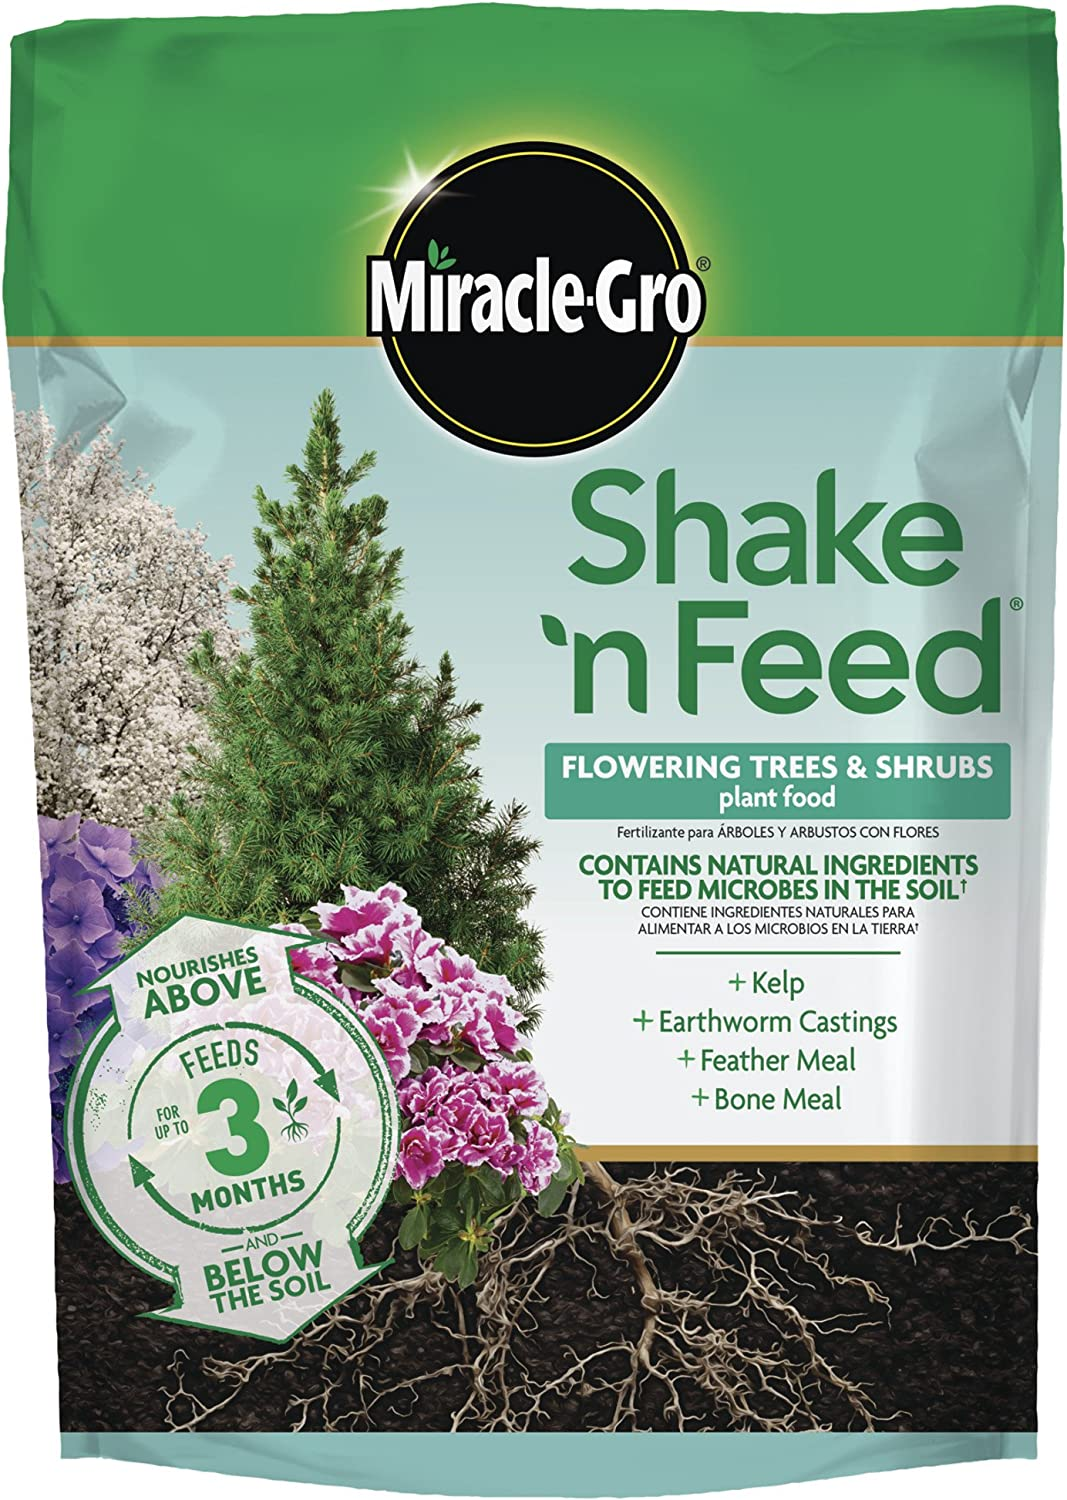 Miracle-Gro Shake 'N Feed Flowering Trees and Shrubs Plant Food, 8 lbs